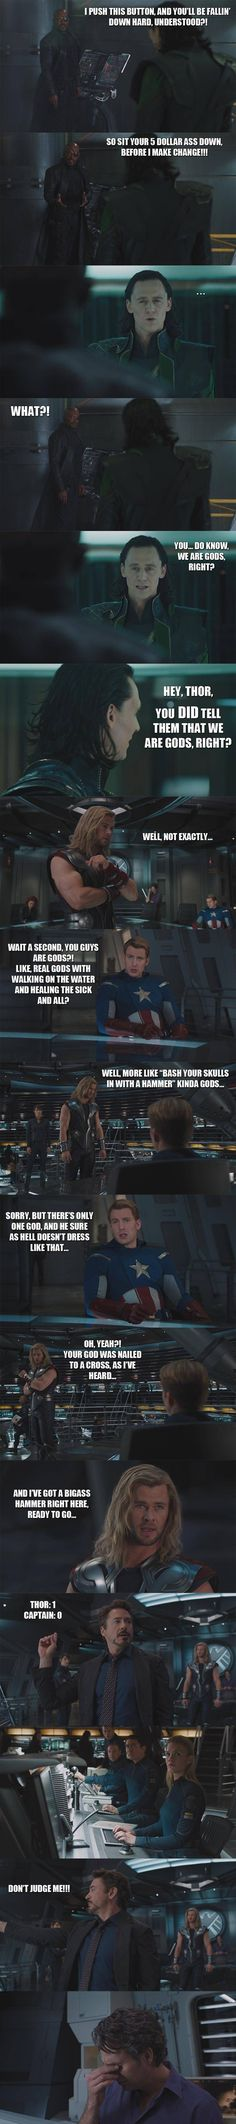 If I had written some of the scenes in The Avengers...